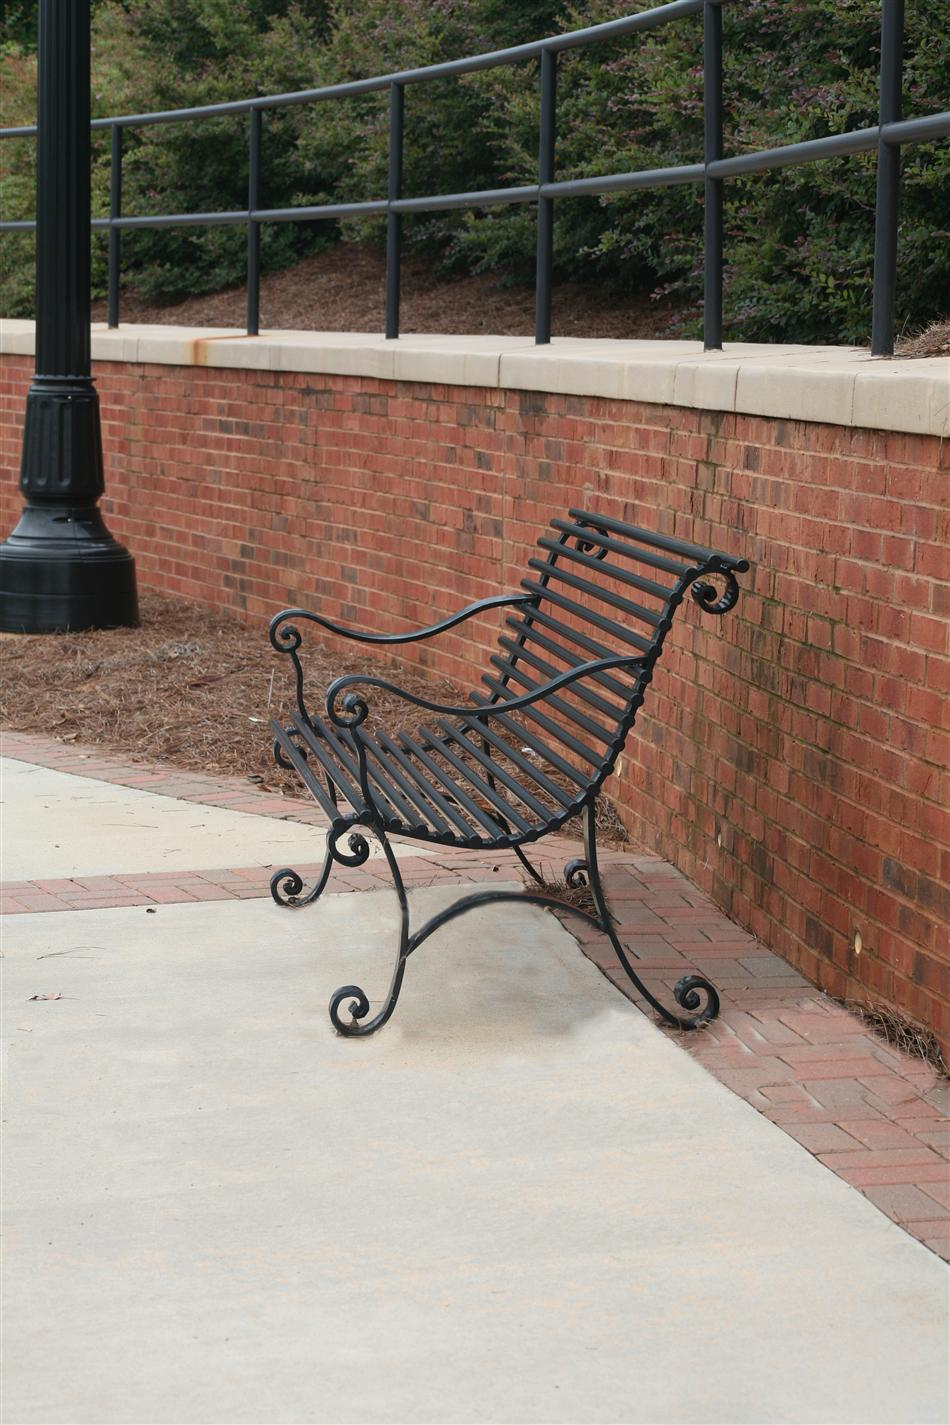 Bench on sidewalk